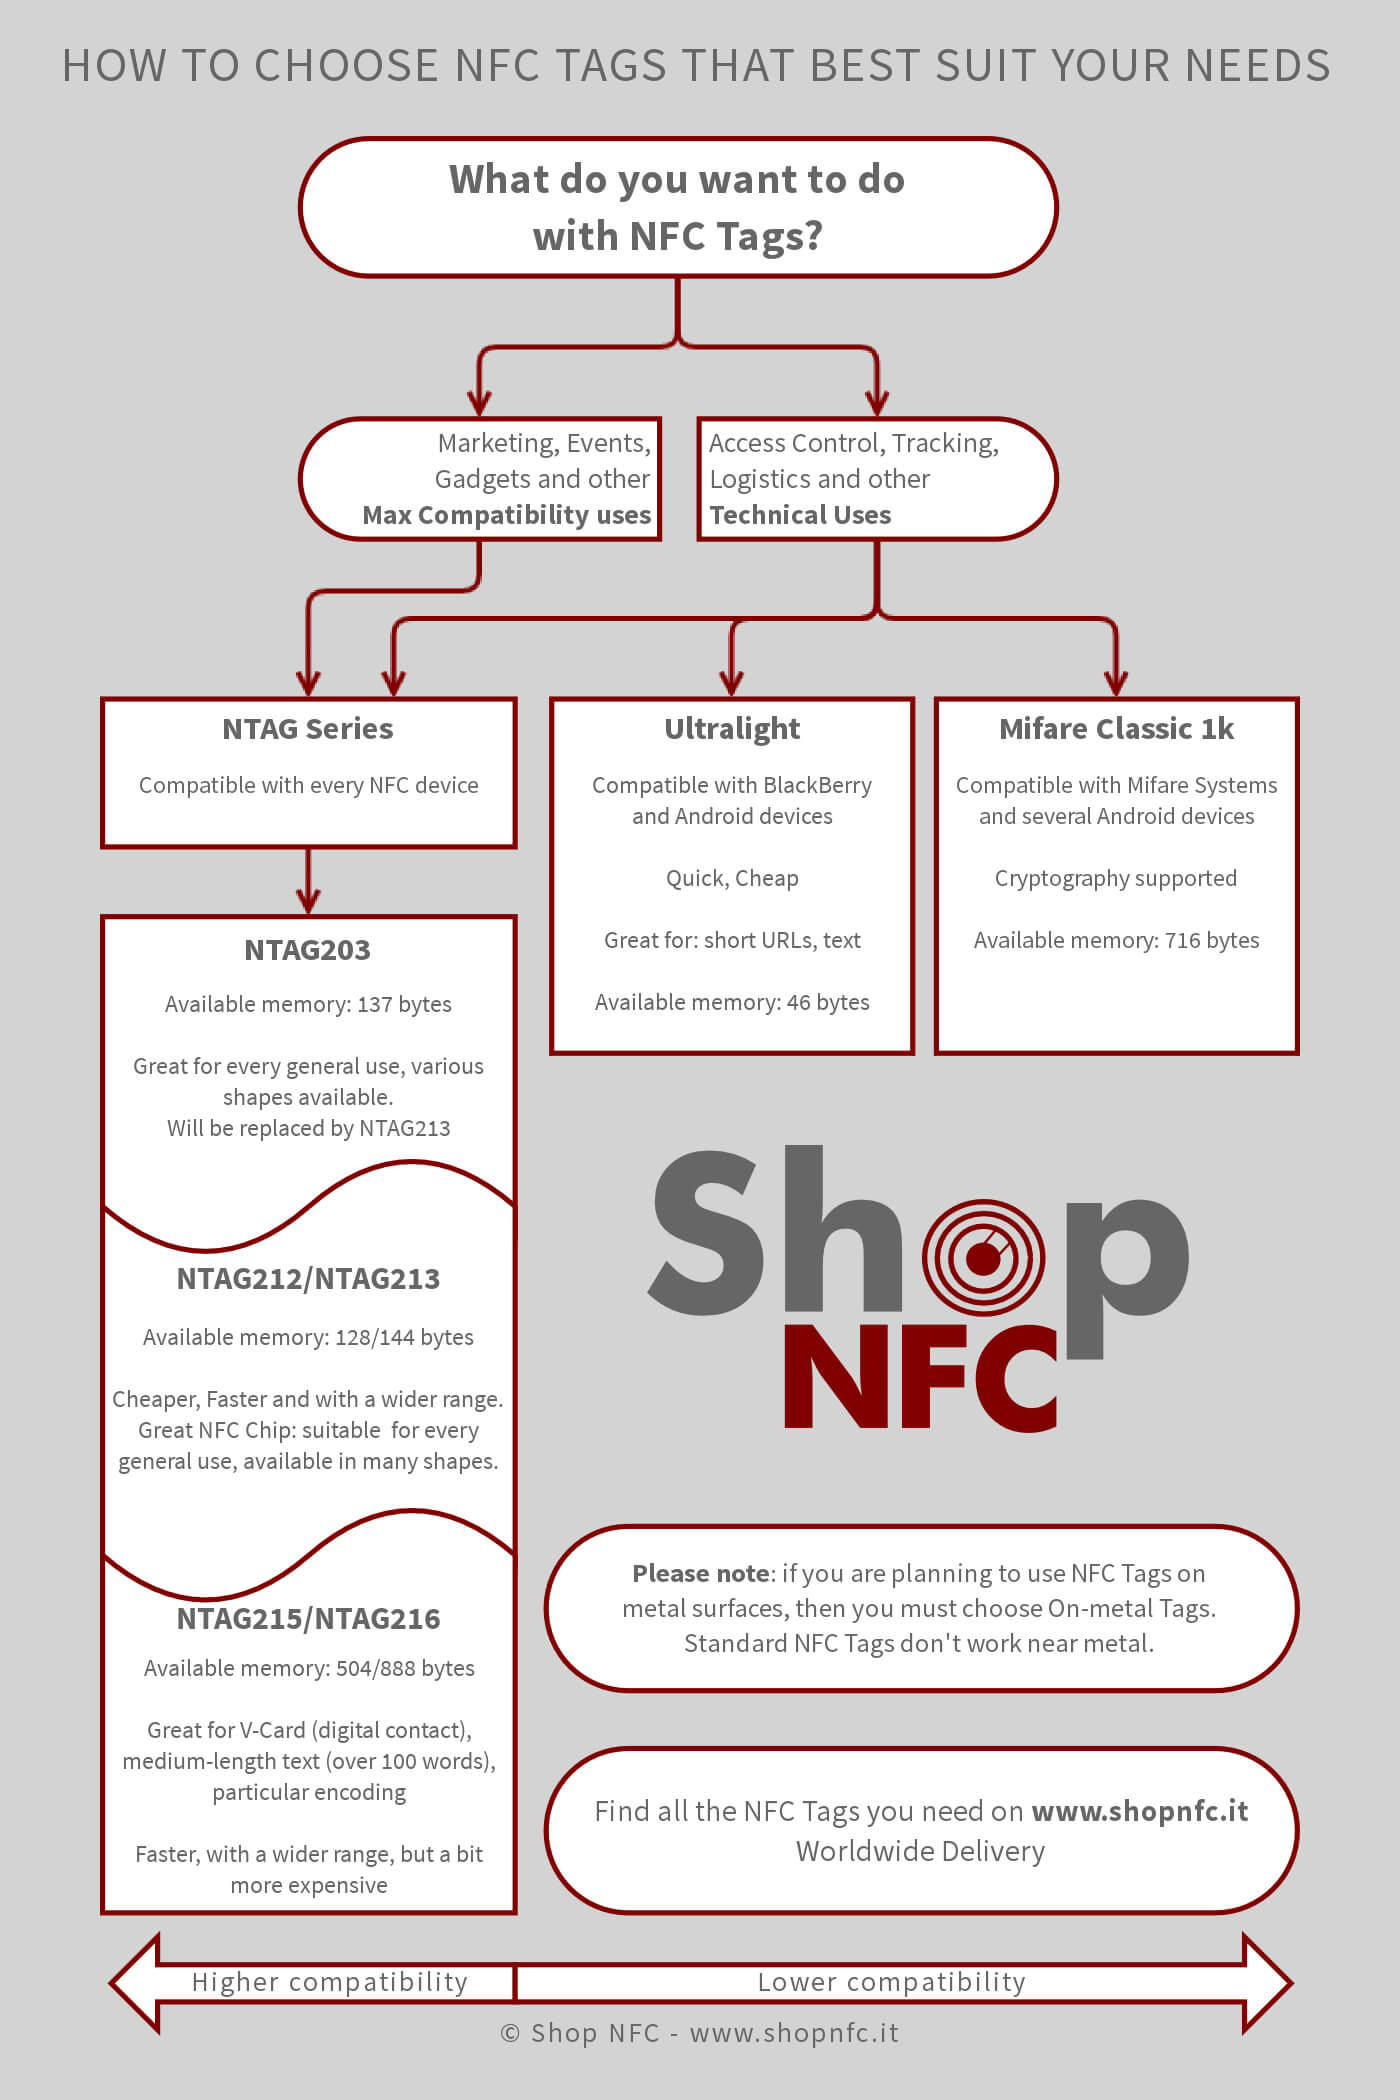 How to Choose NFC Tags - Flow Chart